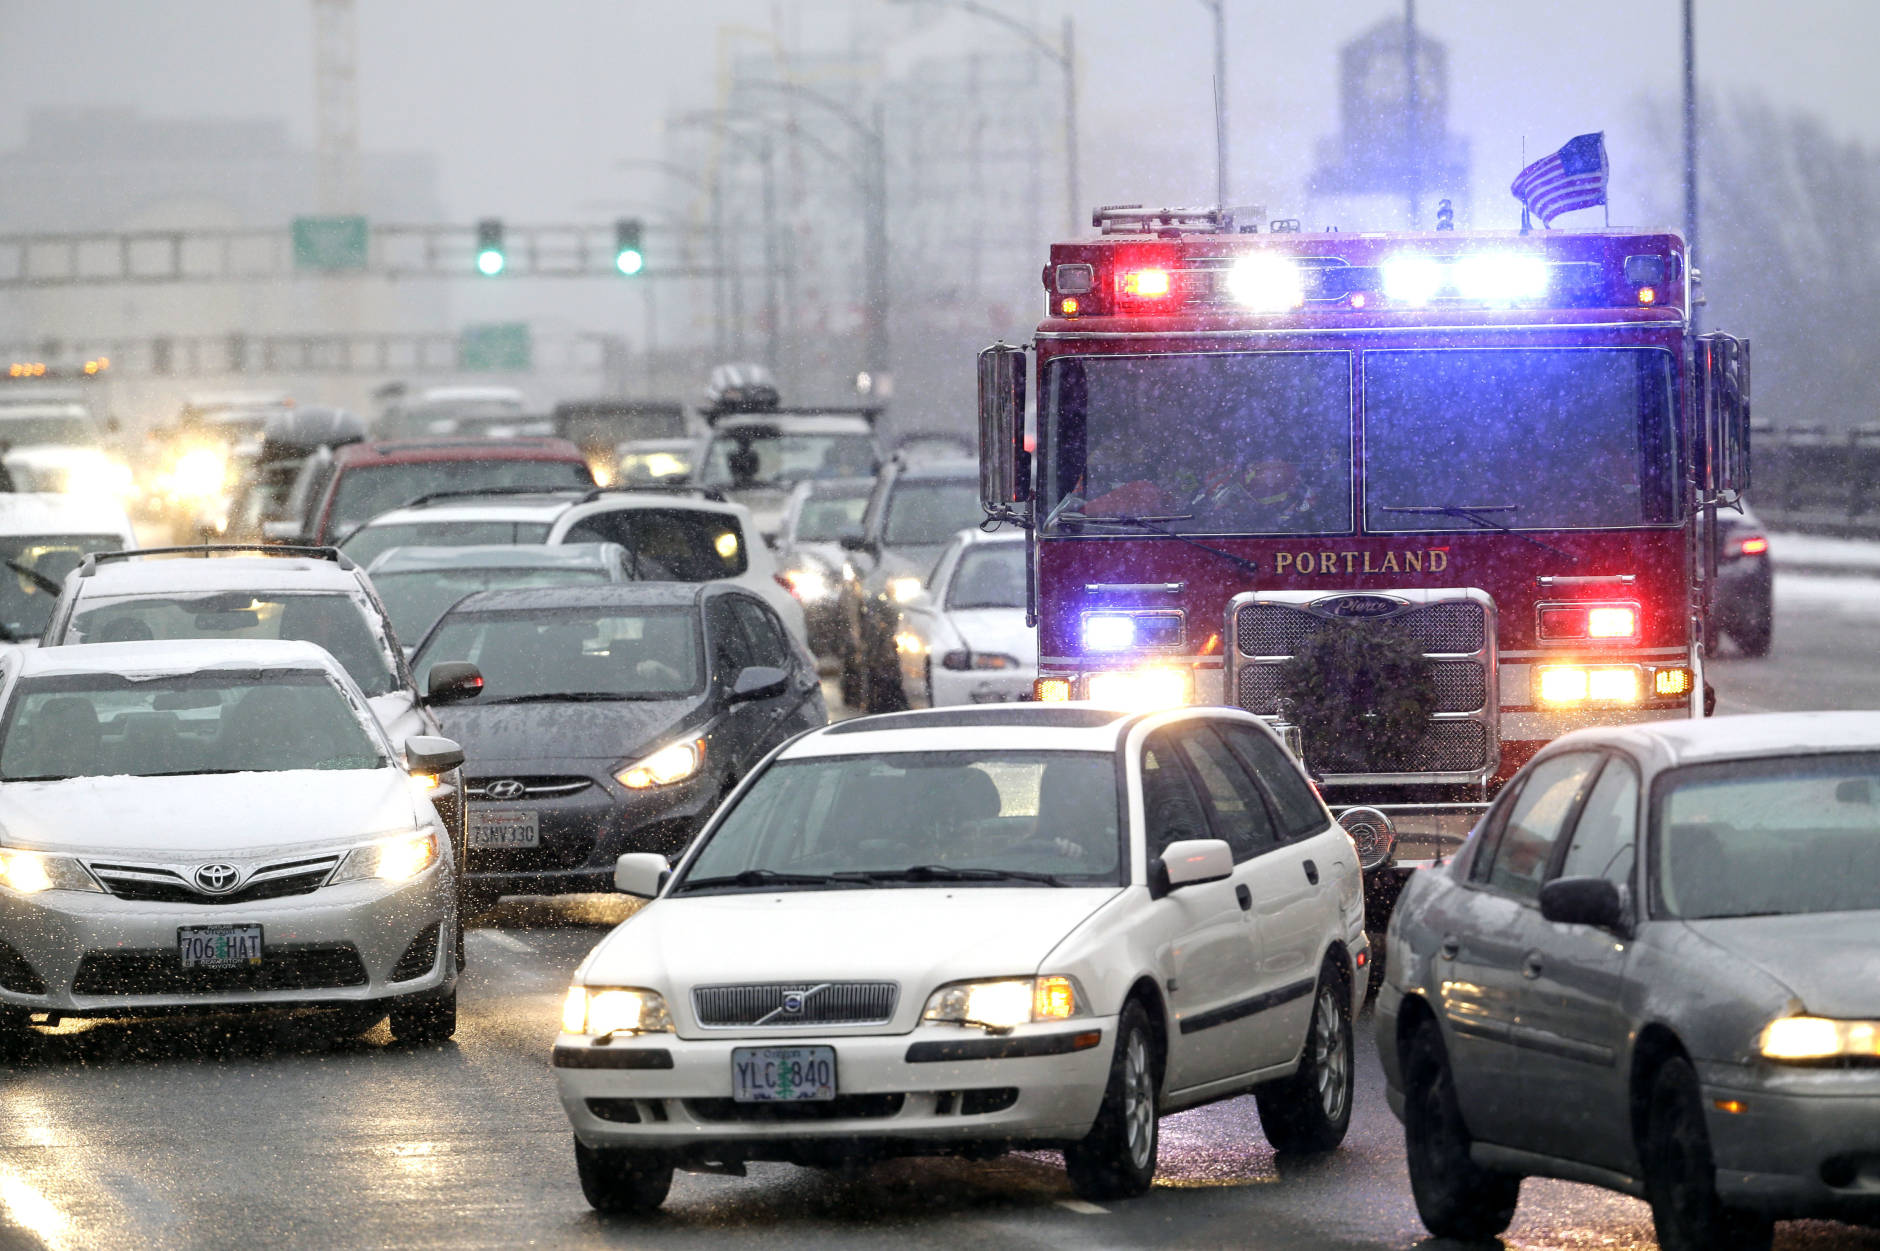 An emergency vehicle fights through heavy traffic as a snow storm moves in on the area in Portland, Ore., Wednesday, Dec. 14, 2016. A wintry afternoon and evening is forecast for much of Oregon, with some cities expected to get a foot of snow.(AP Photo/Don Ryan)